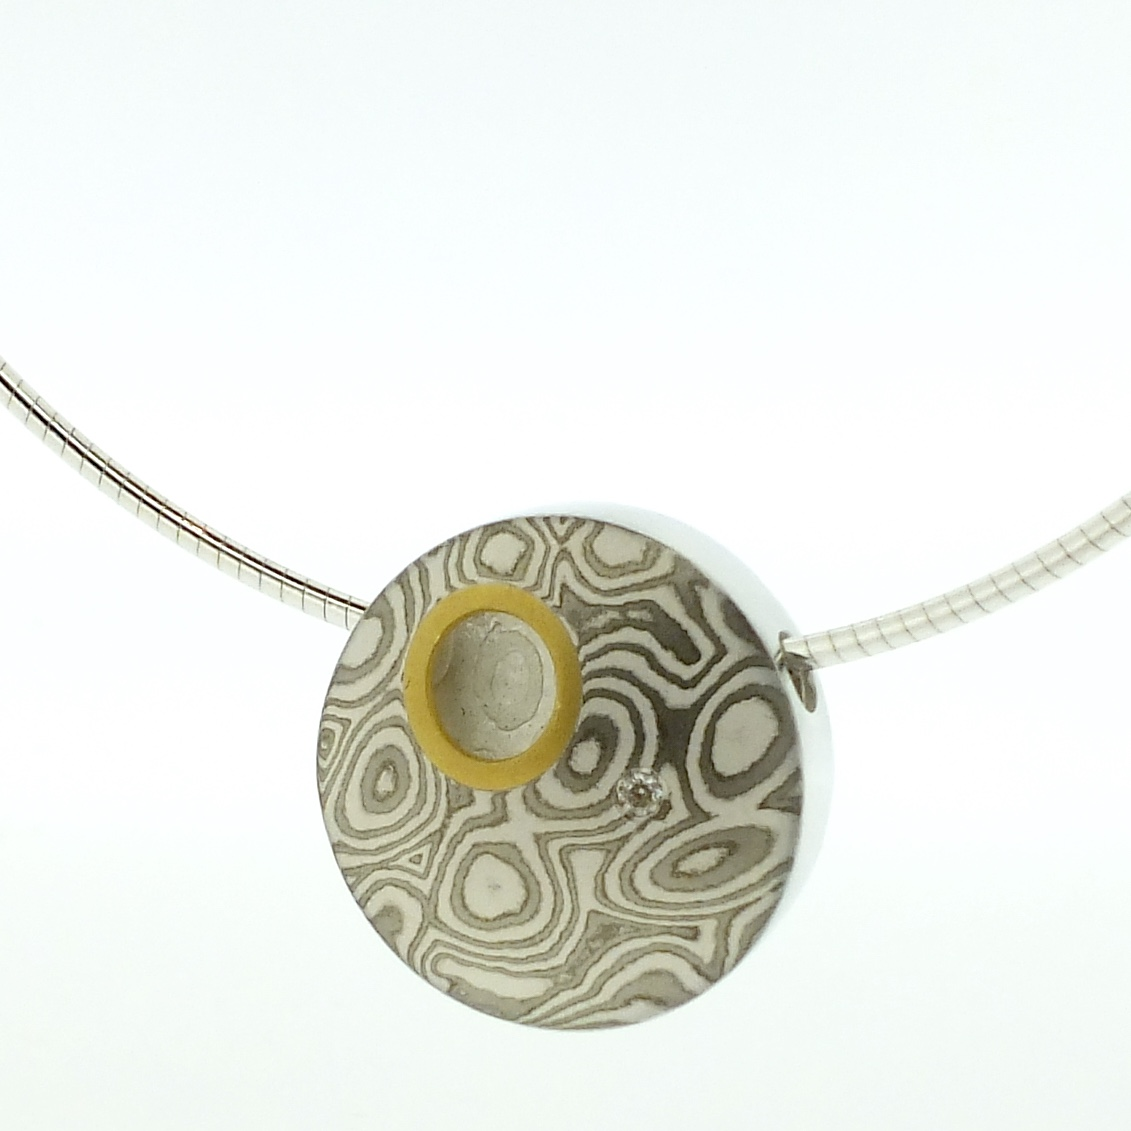 18k white gold and silver mokume gane medium discus pendant with 22k gold rimmed cutaway and diamond detail